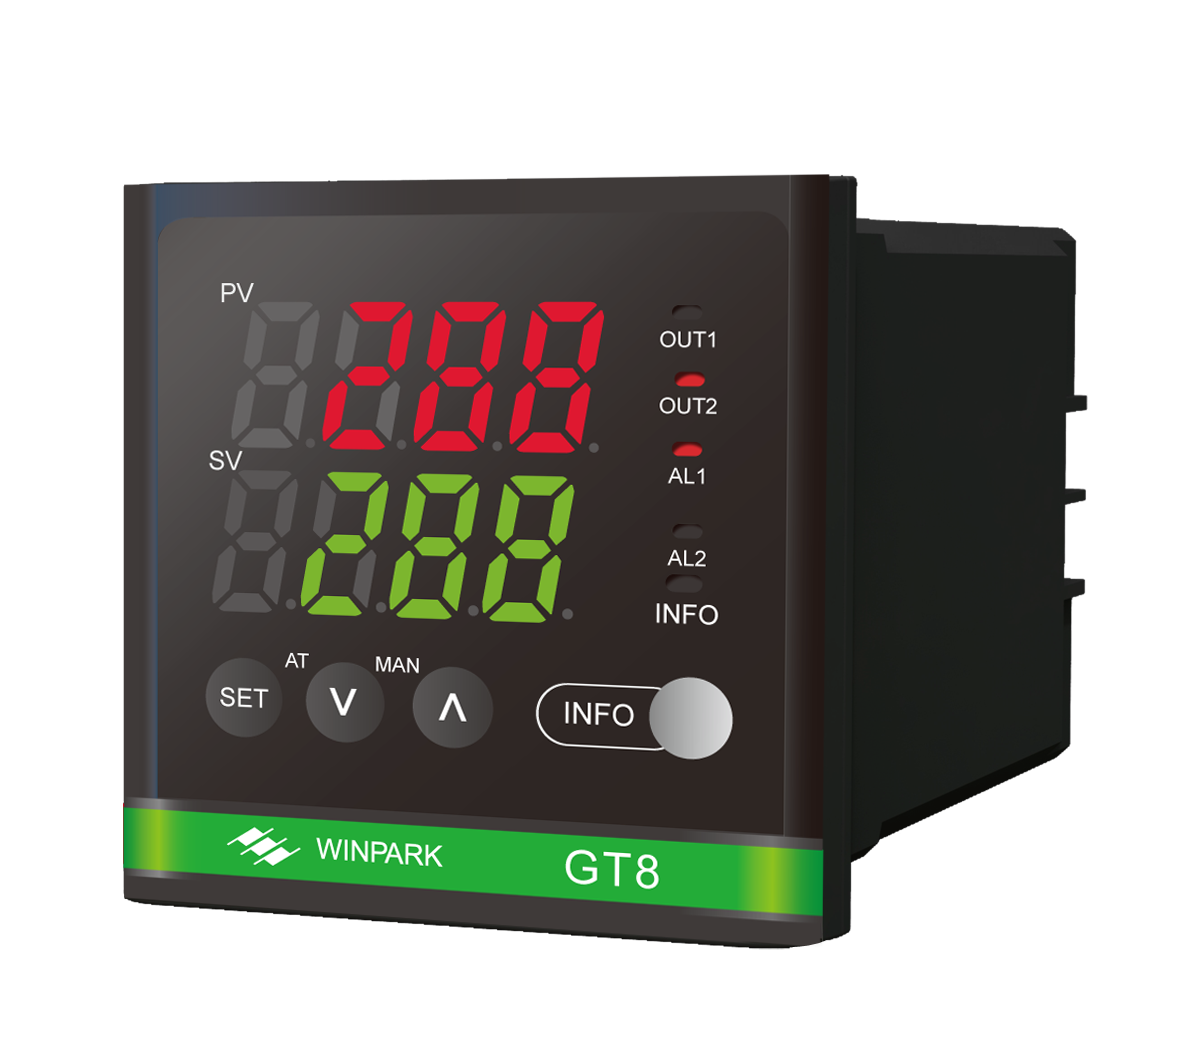 digital mould digital temperature controller Winpark GT8-ATL110 touch screen lg kp500 (sincerely looking for cooperation)